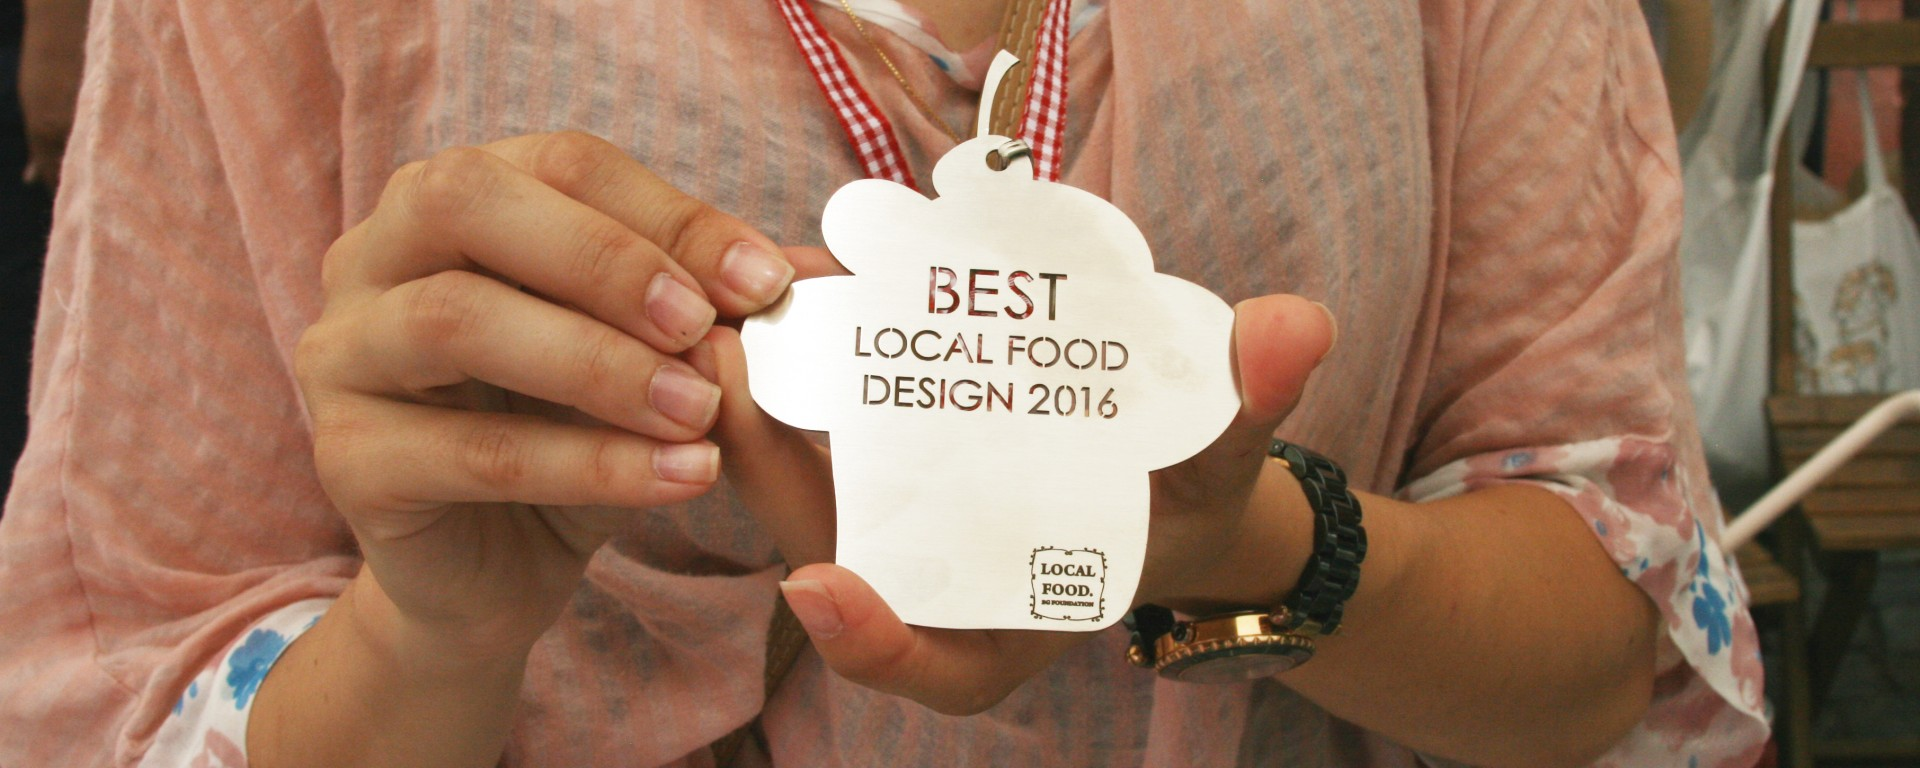 Local Food Design 2016